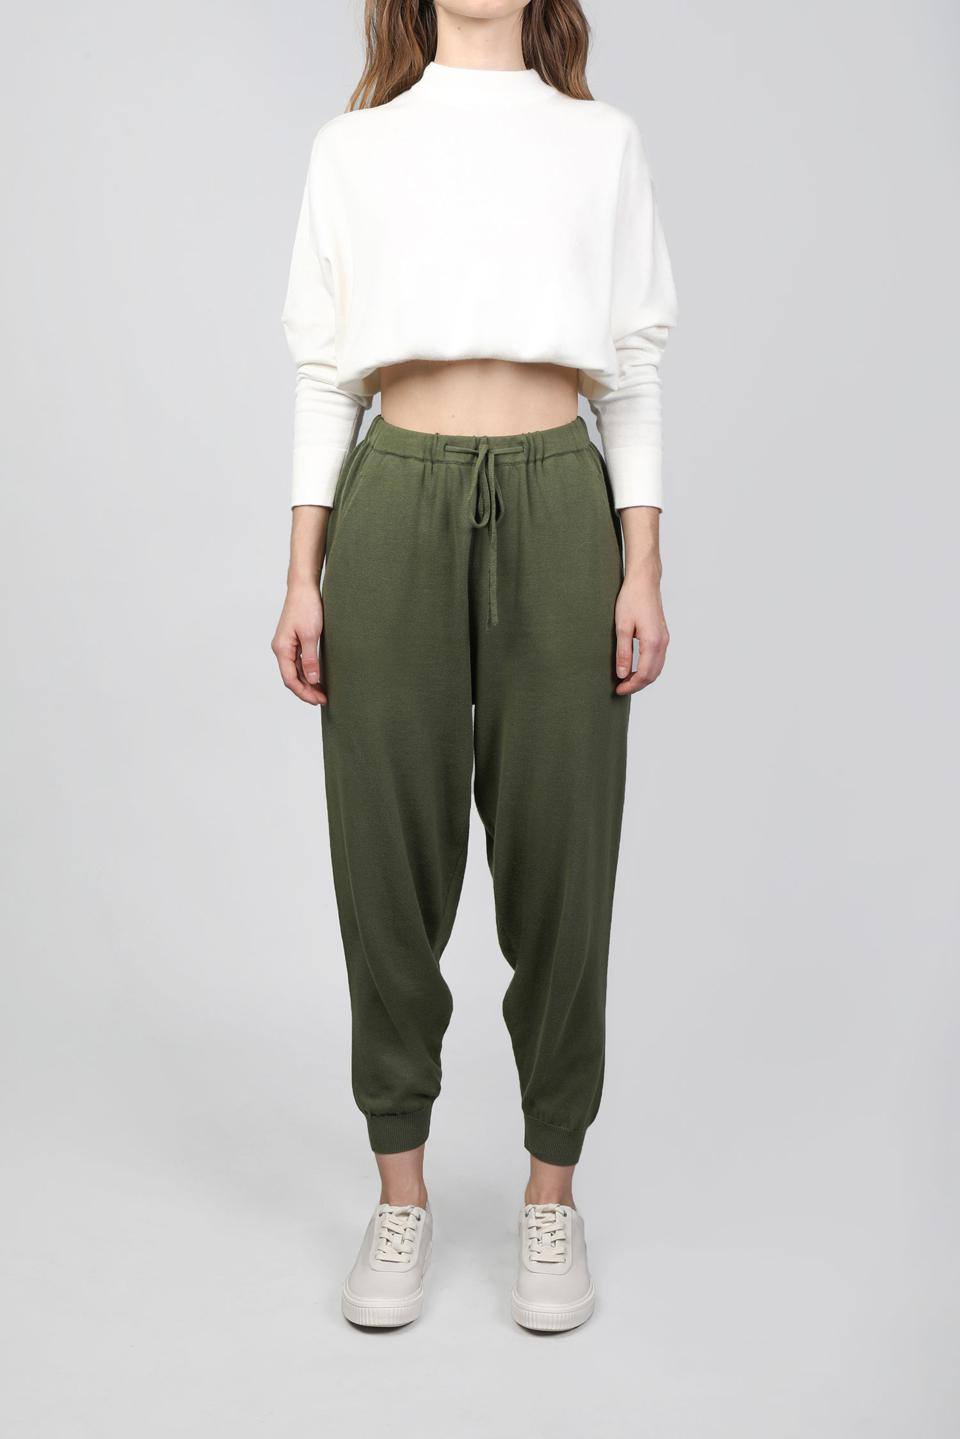 A classic white cropped sweater and joggers in a shade of pine from PATTON STUDIO